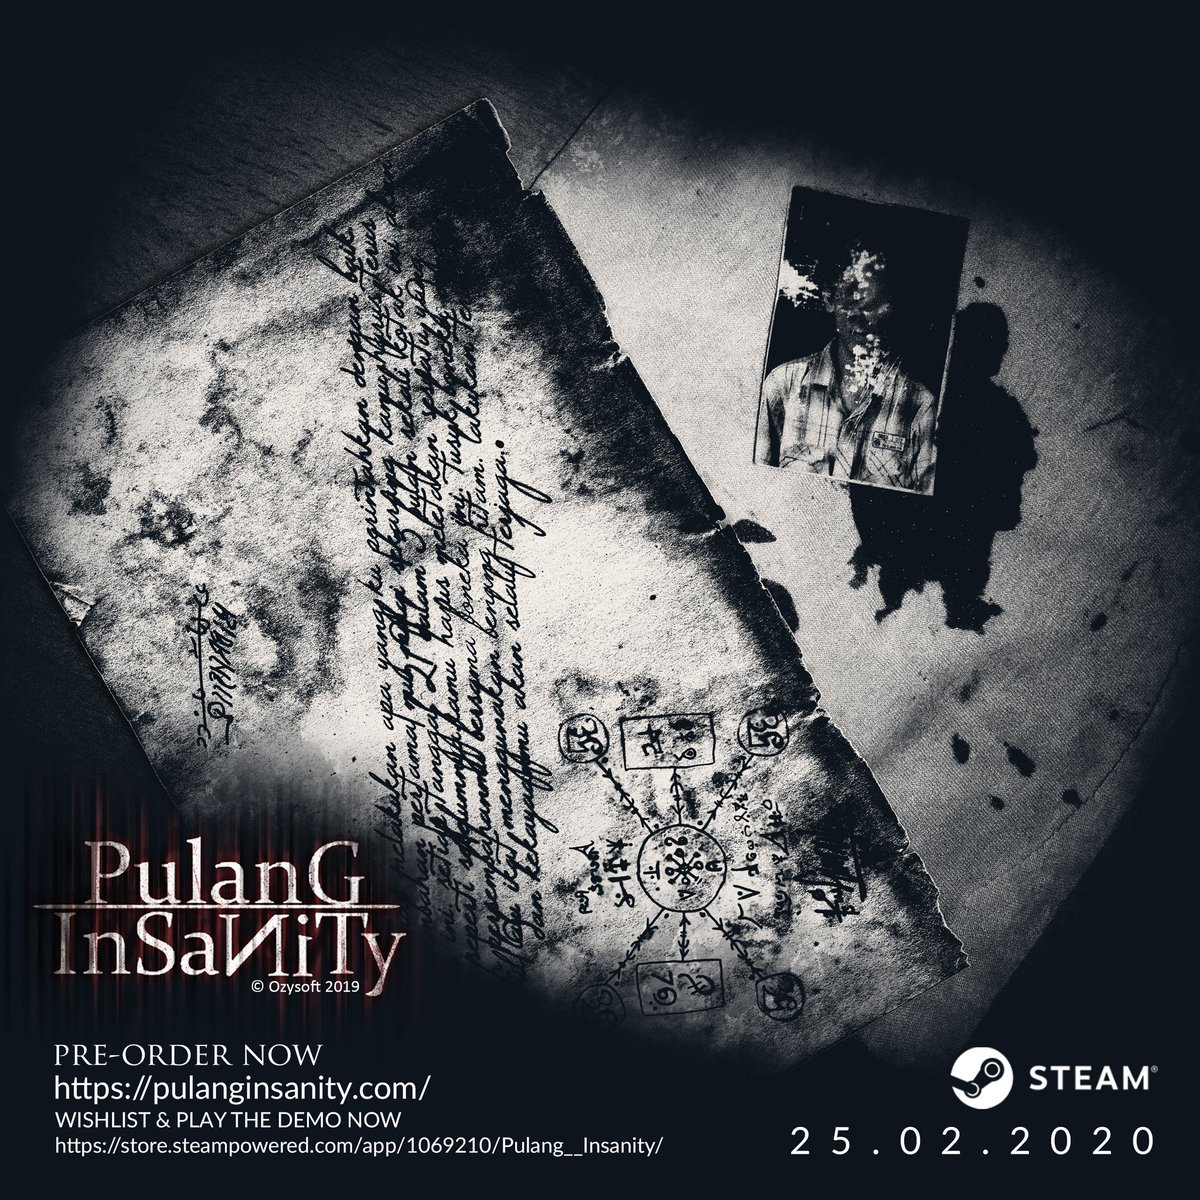 WISHLIST & PLAY THE DEMO NOW https://store.steampowered.com/app/1069210/Pulang__Insanity/ …  Website : http://pulanginsanity.com/   #EnterInsanity #ComingSoon #Games #Steam #Indonesia #horror #SurvivalHorror #PsychologicalHorror #pulanginsanity #NewDemoUpdatepic.twitter.com/tnCHEWfC45